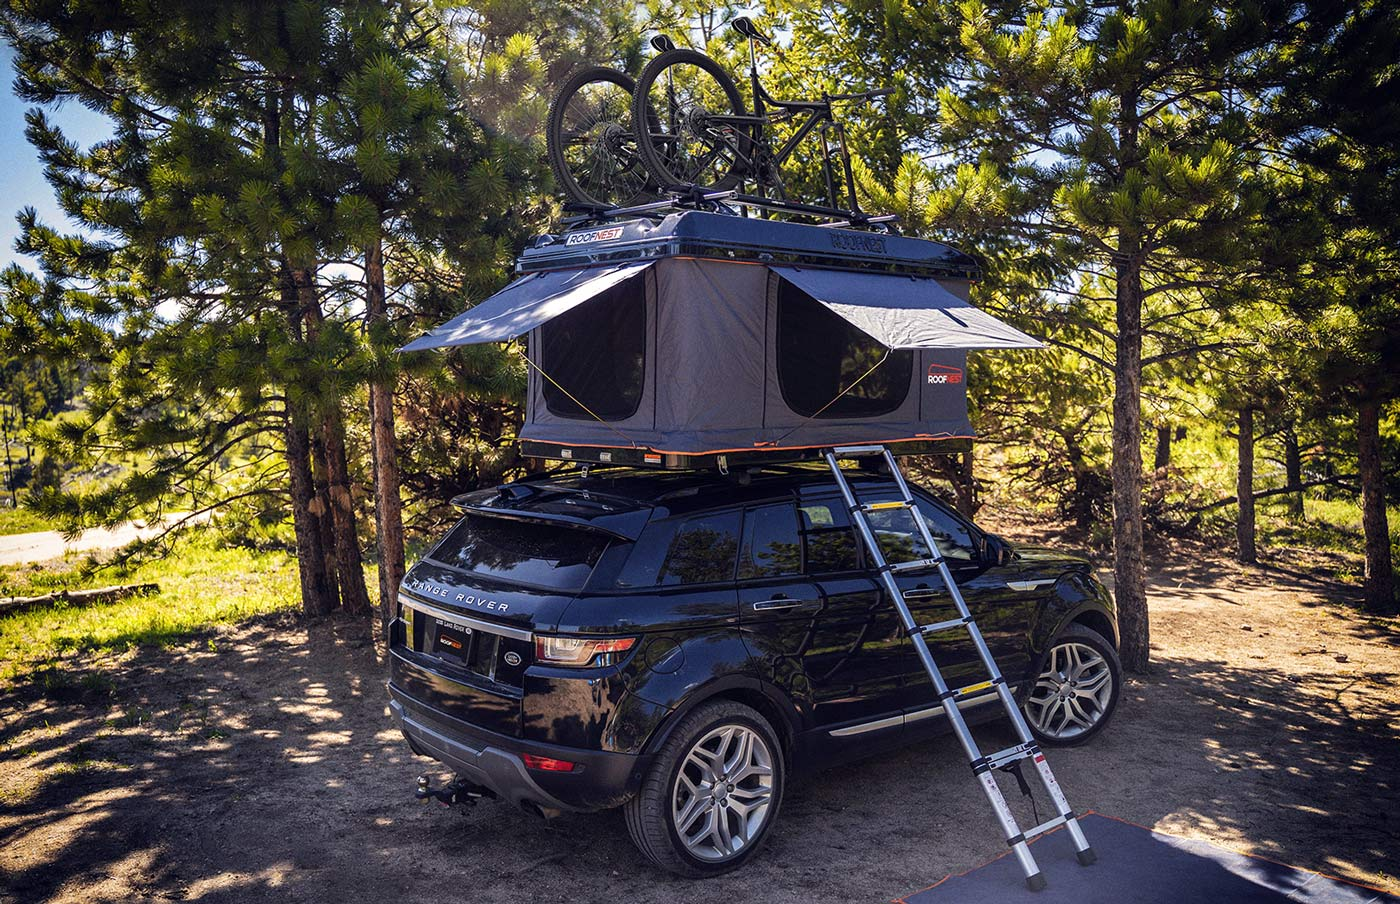 roofnest sparrow adventure rooftop tent with bike trays shown with tent open